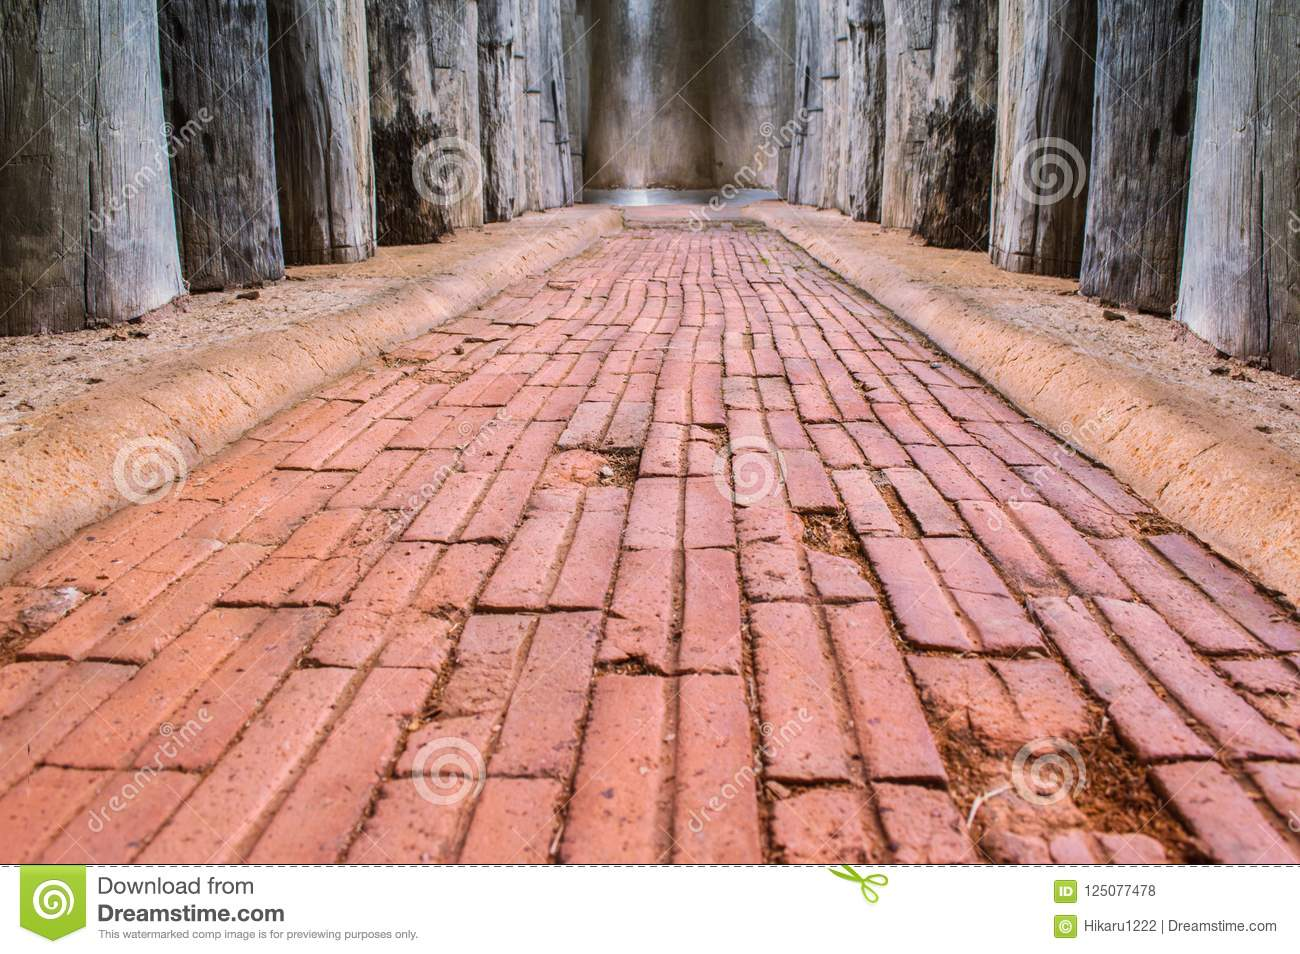 Walkway made by red bricks used as background and texture.